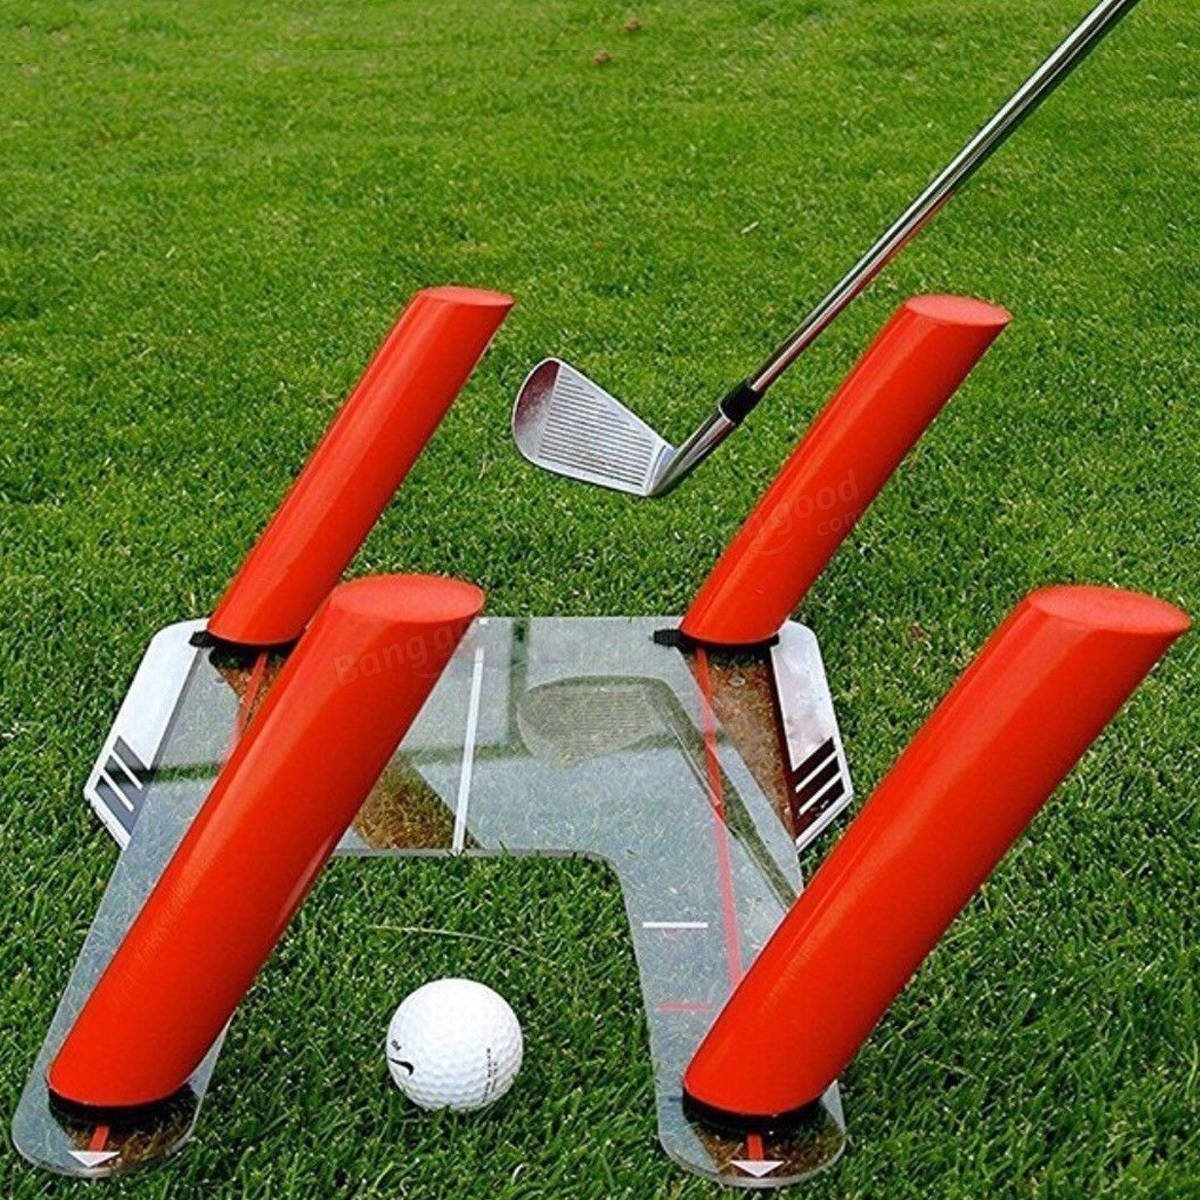 Resource Academy Golf Swing Training Set - Improve Swing Path - Baseboard Plus 5 Rods by Resource Academy (Image #4)